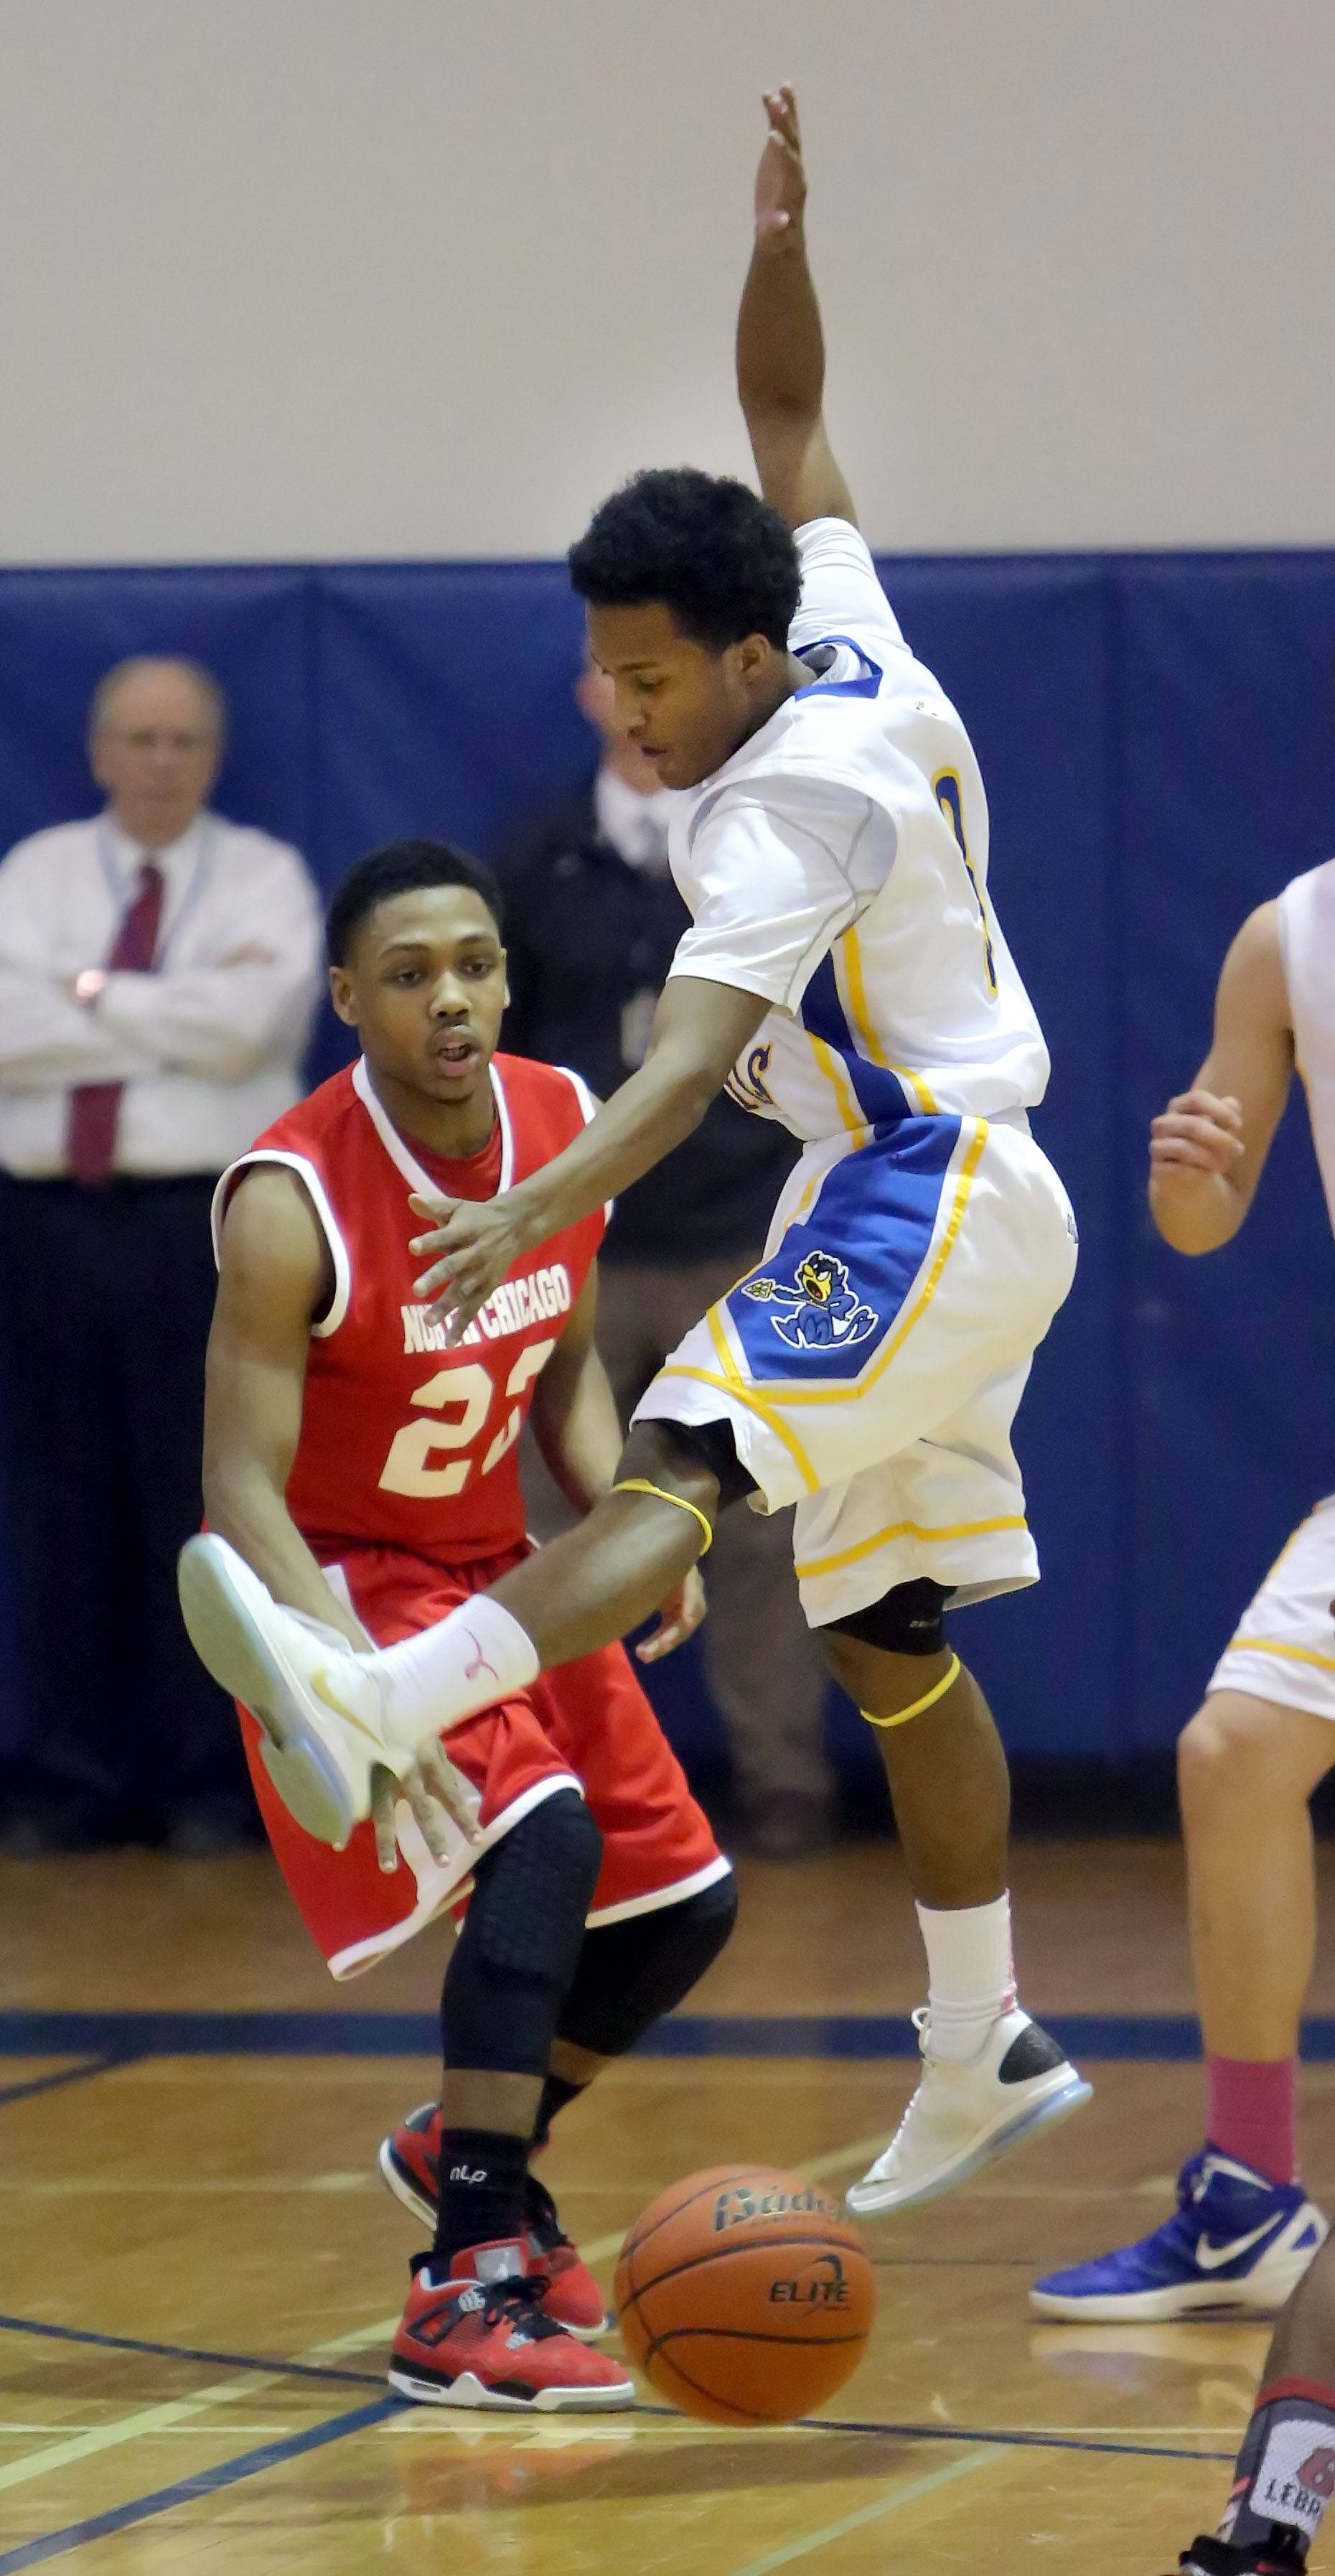 Warren's Eric Gillespie, right, defends against North Chicago's Jamero Shelton on Tuesday night at Warren.